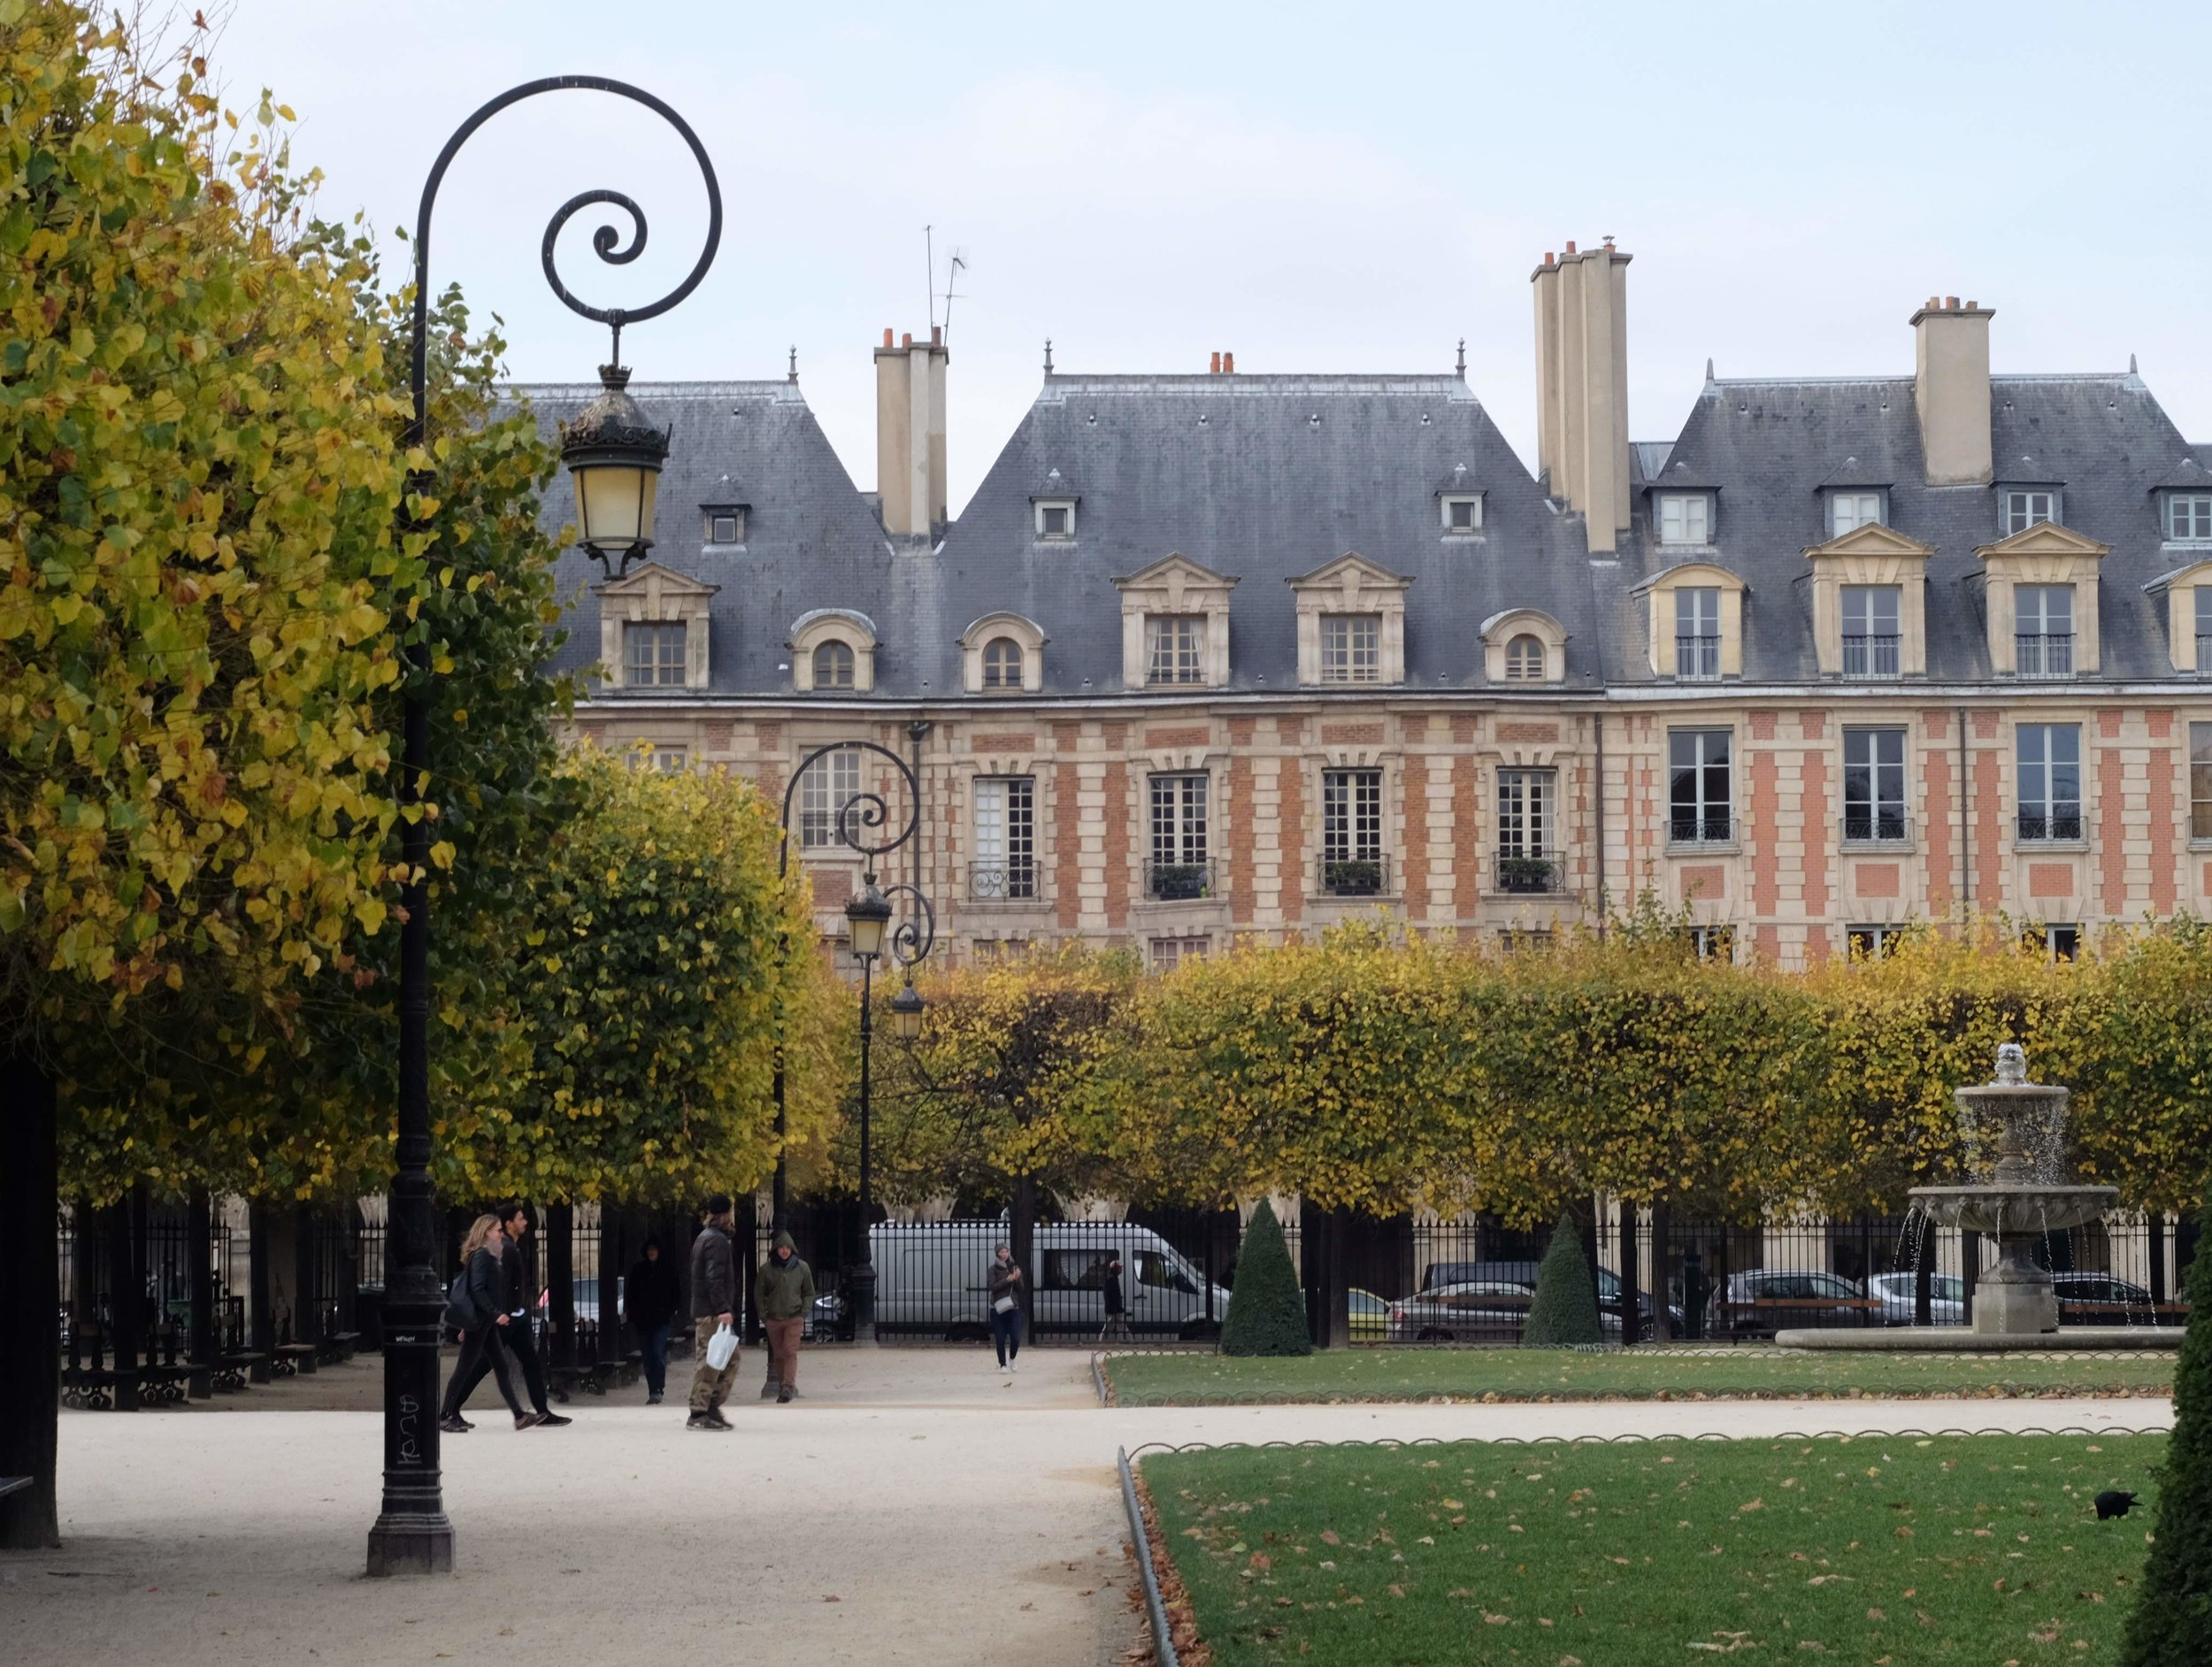 Place des Vosges in October